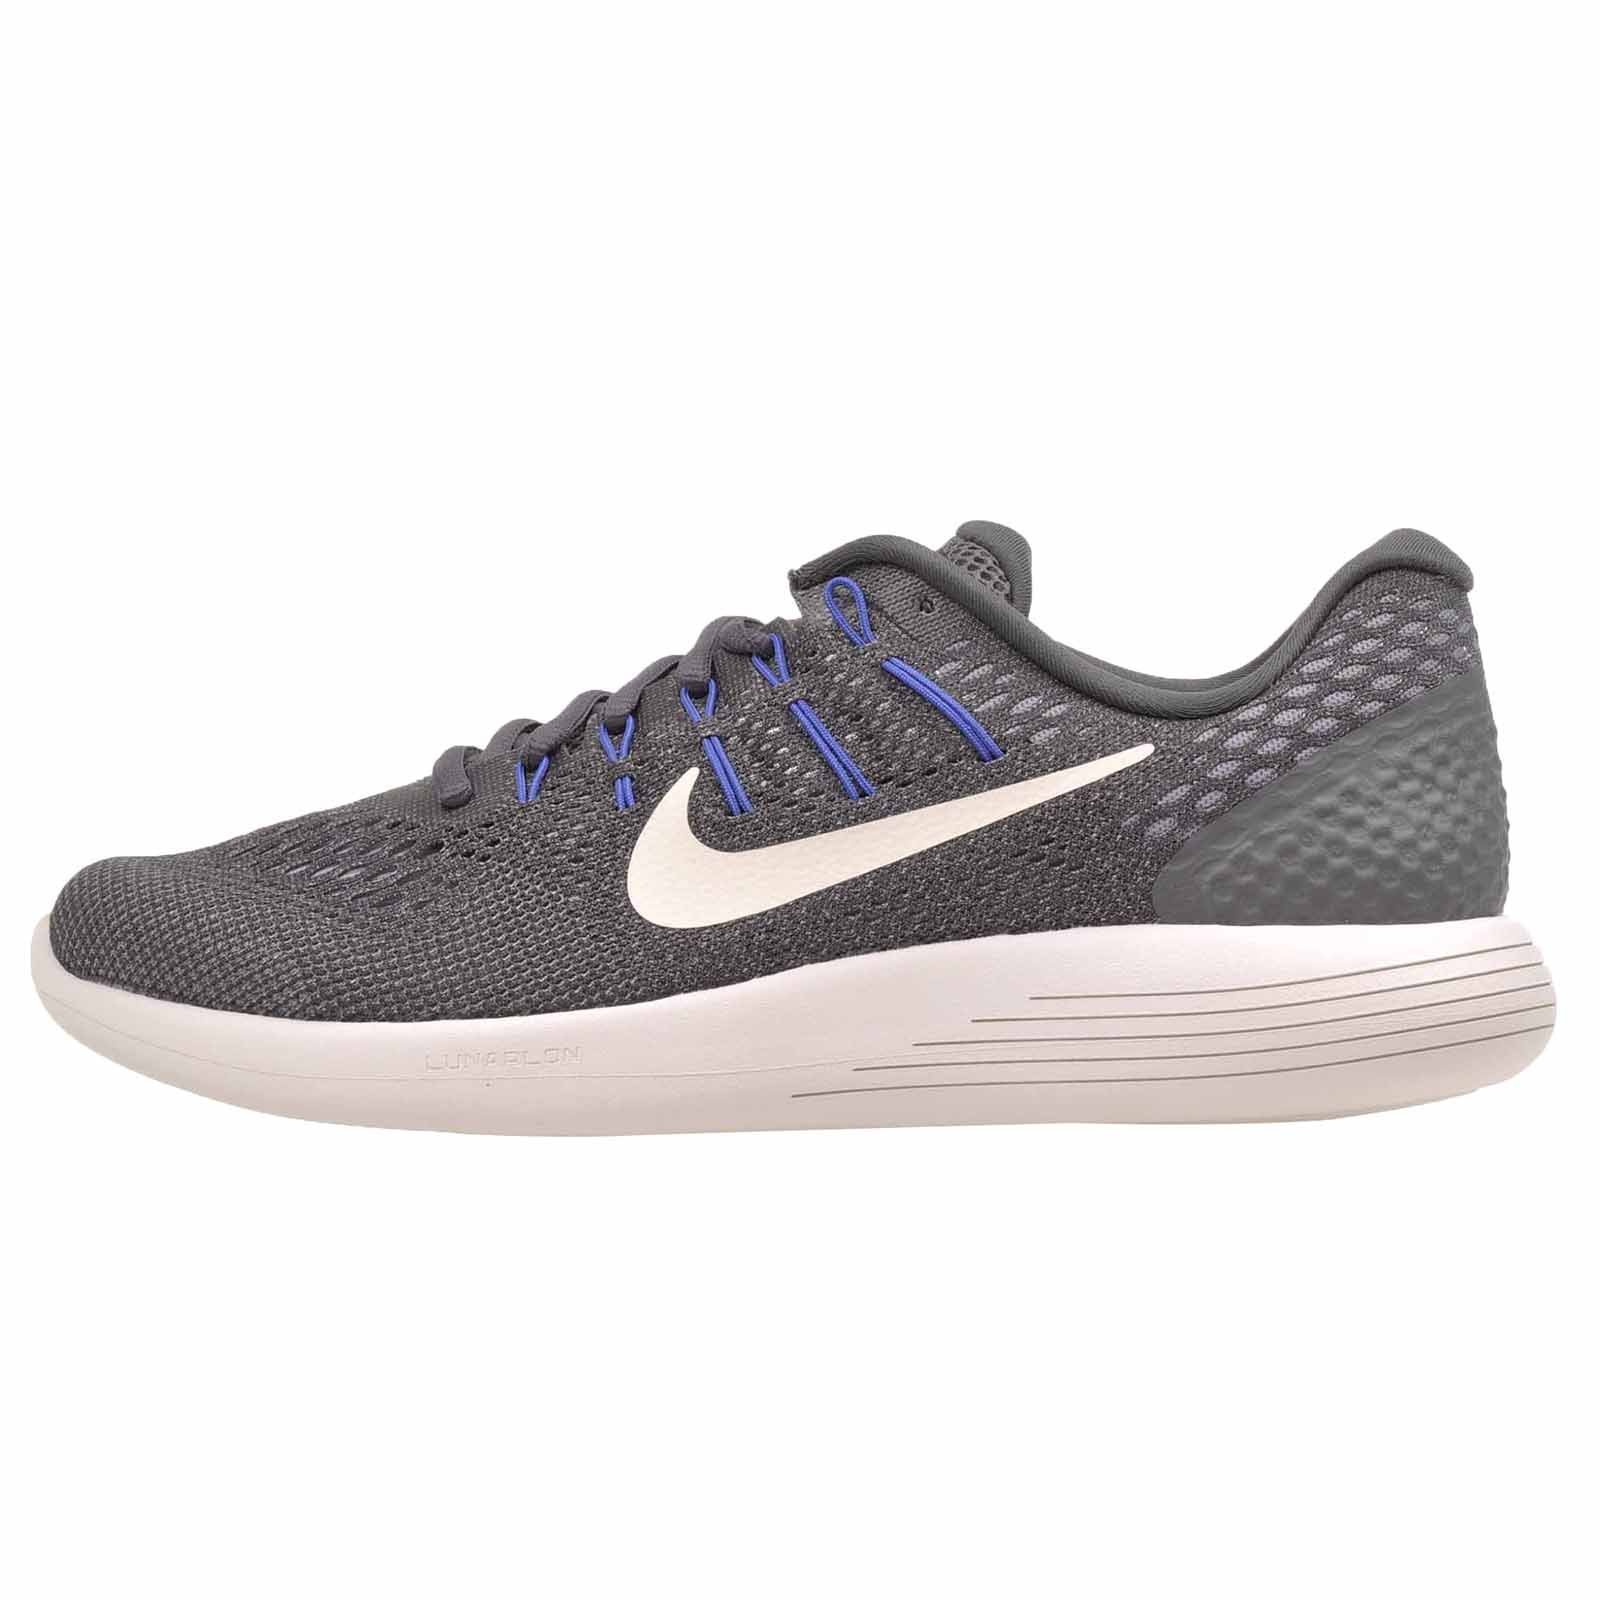 NIKE Men's Lunarglide 8, Dark Grey/Summit White, 11 M US